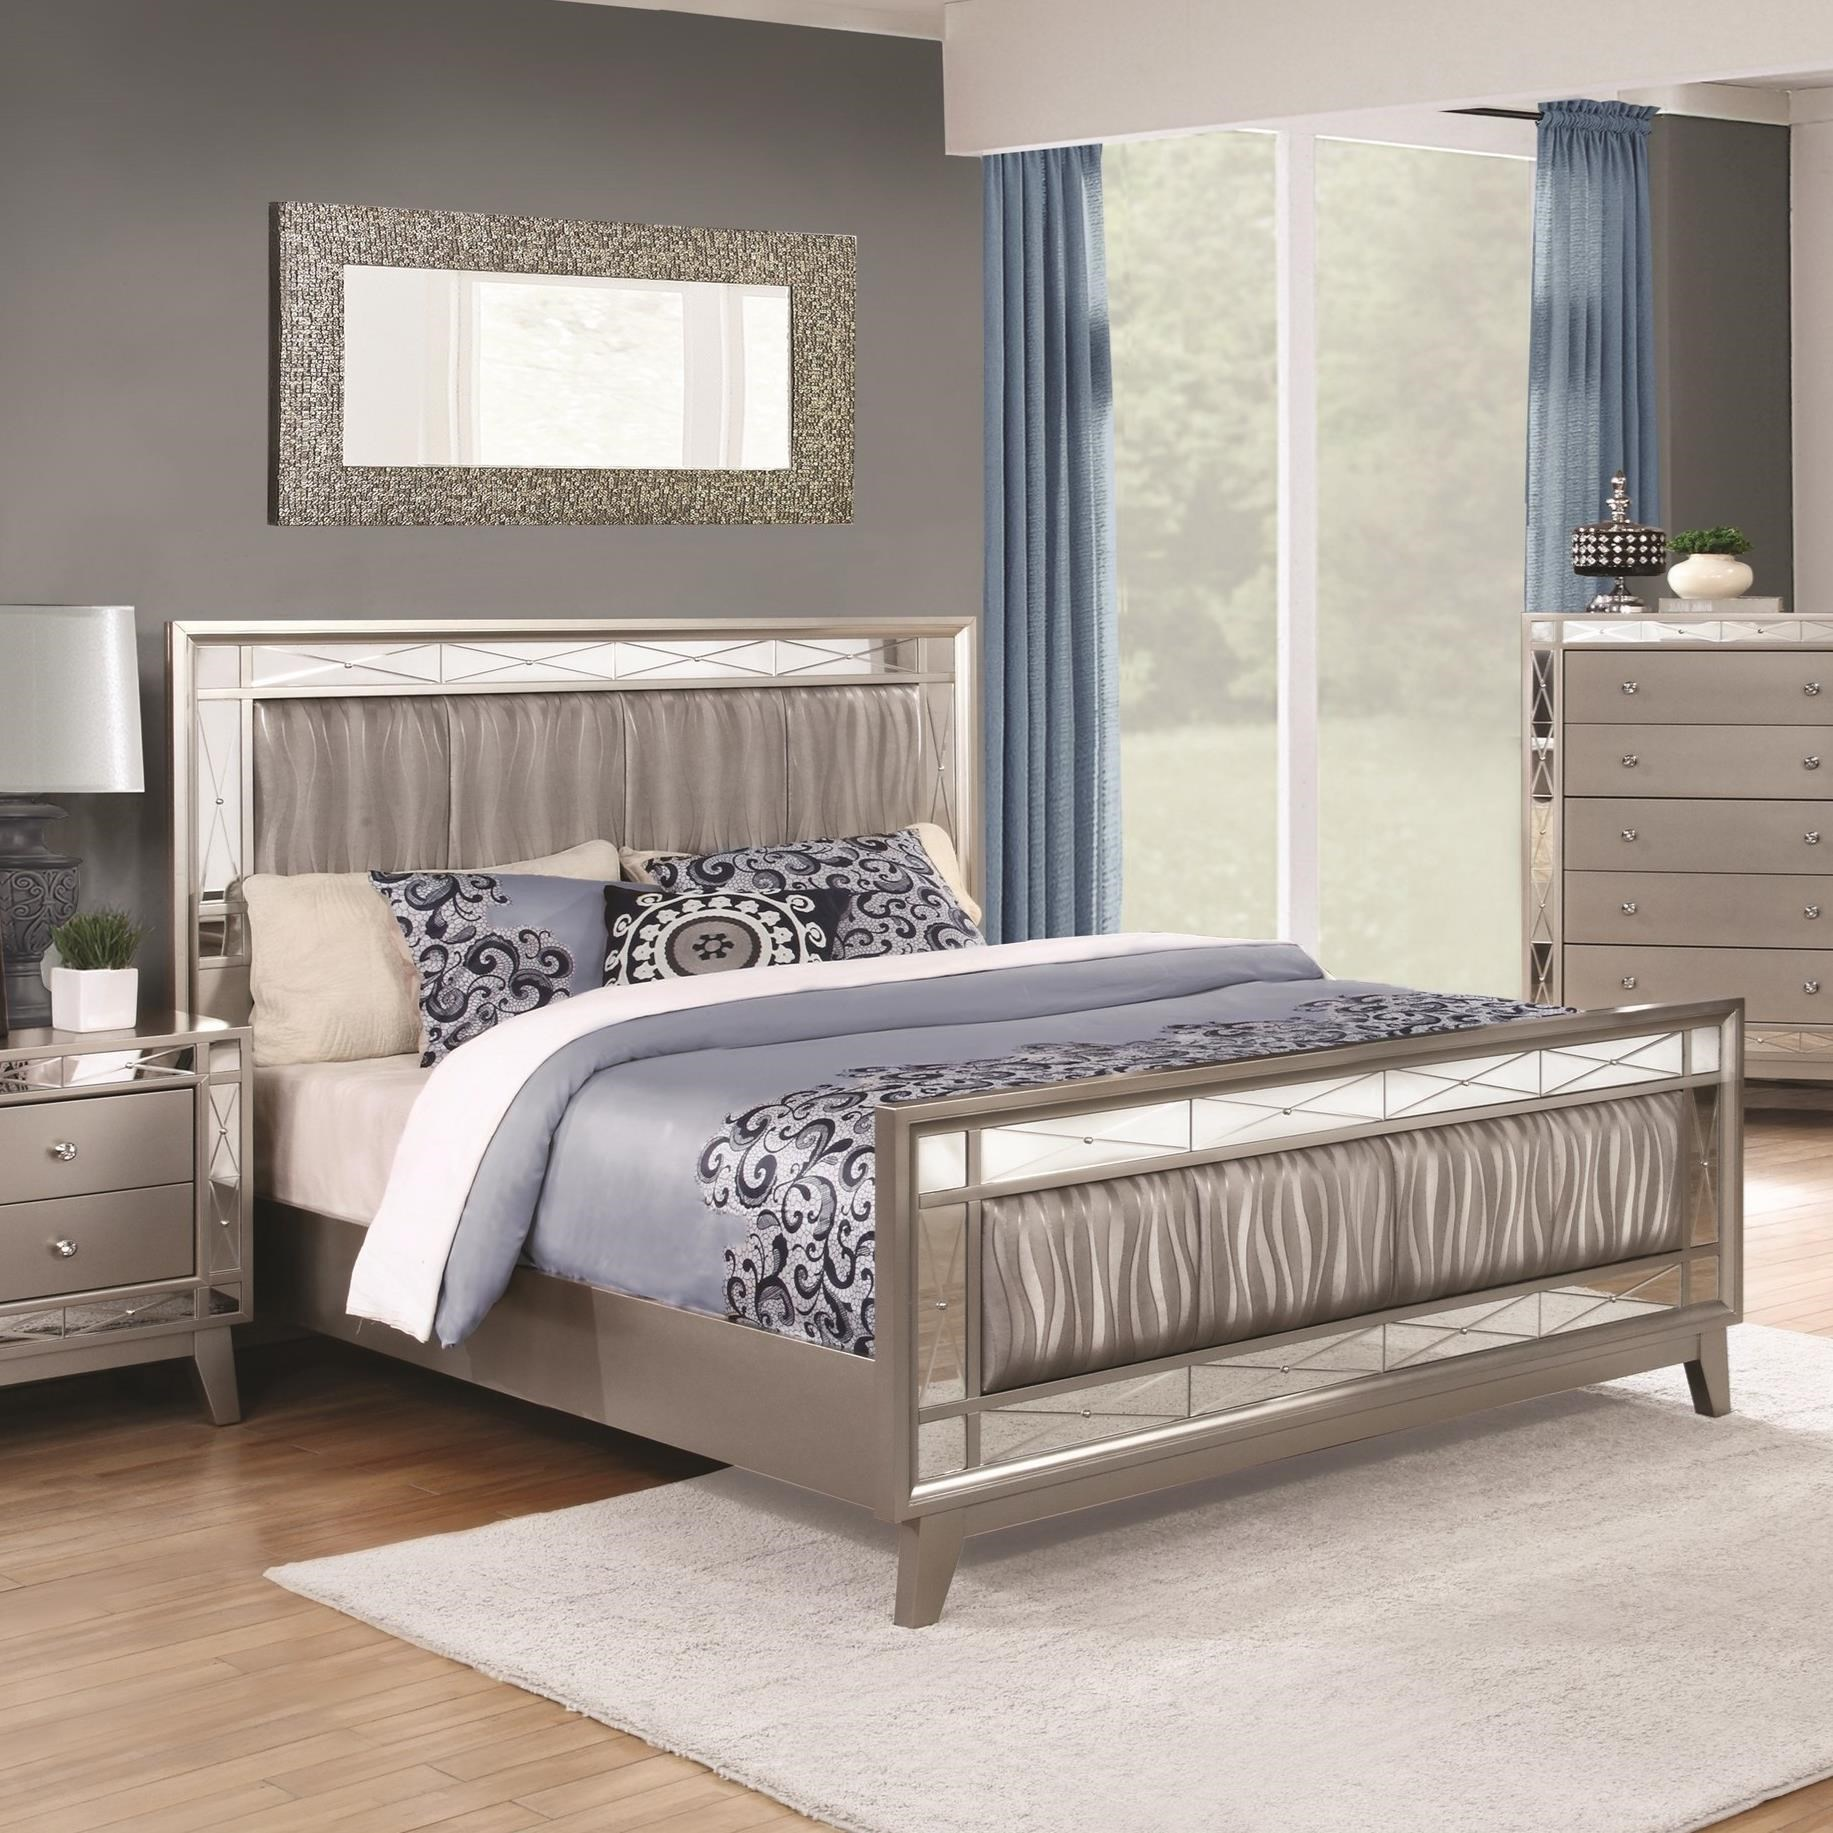 Queen 4 pc set, leighton (bed, dresser, nightstand, mirror)